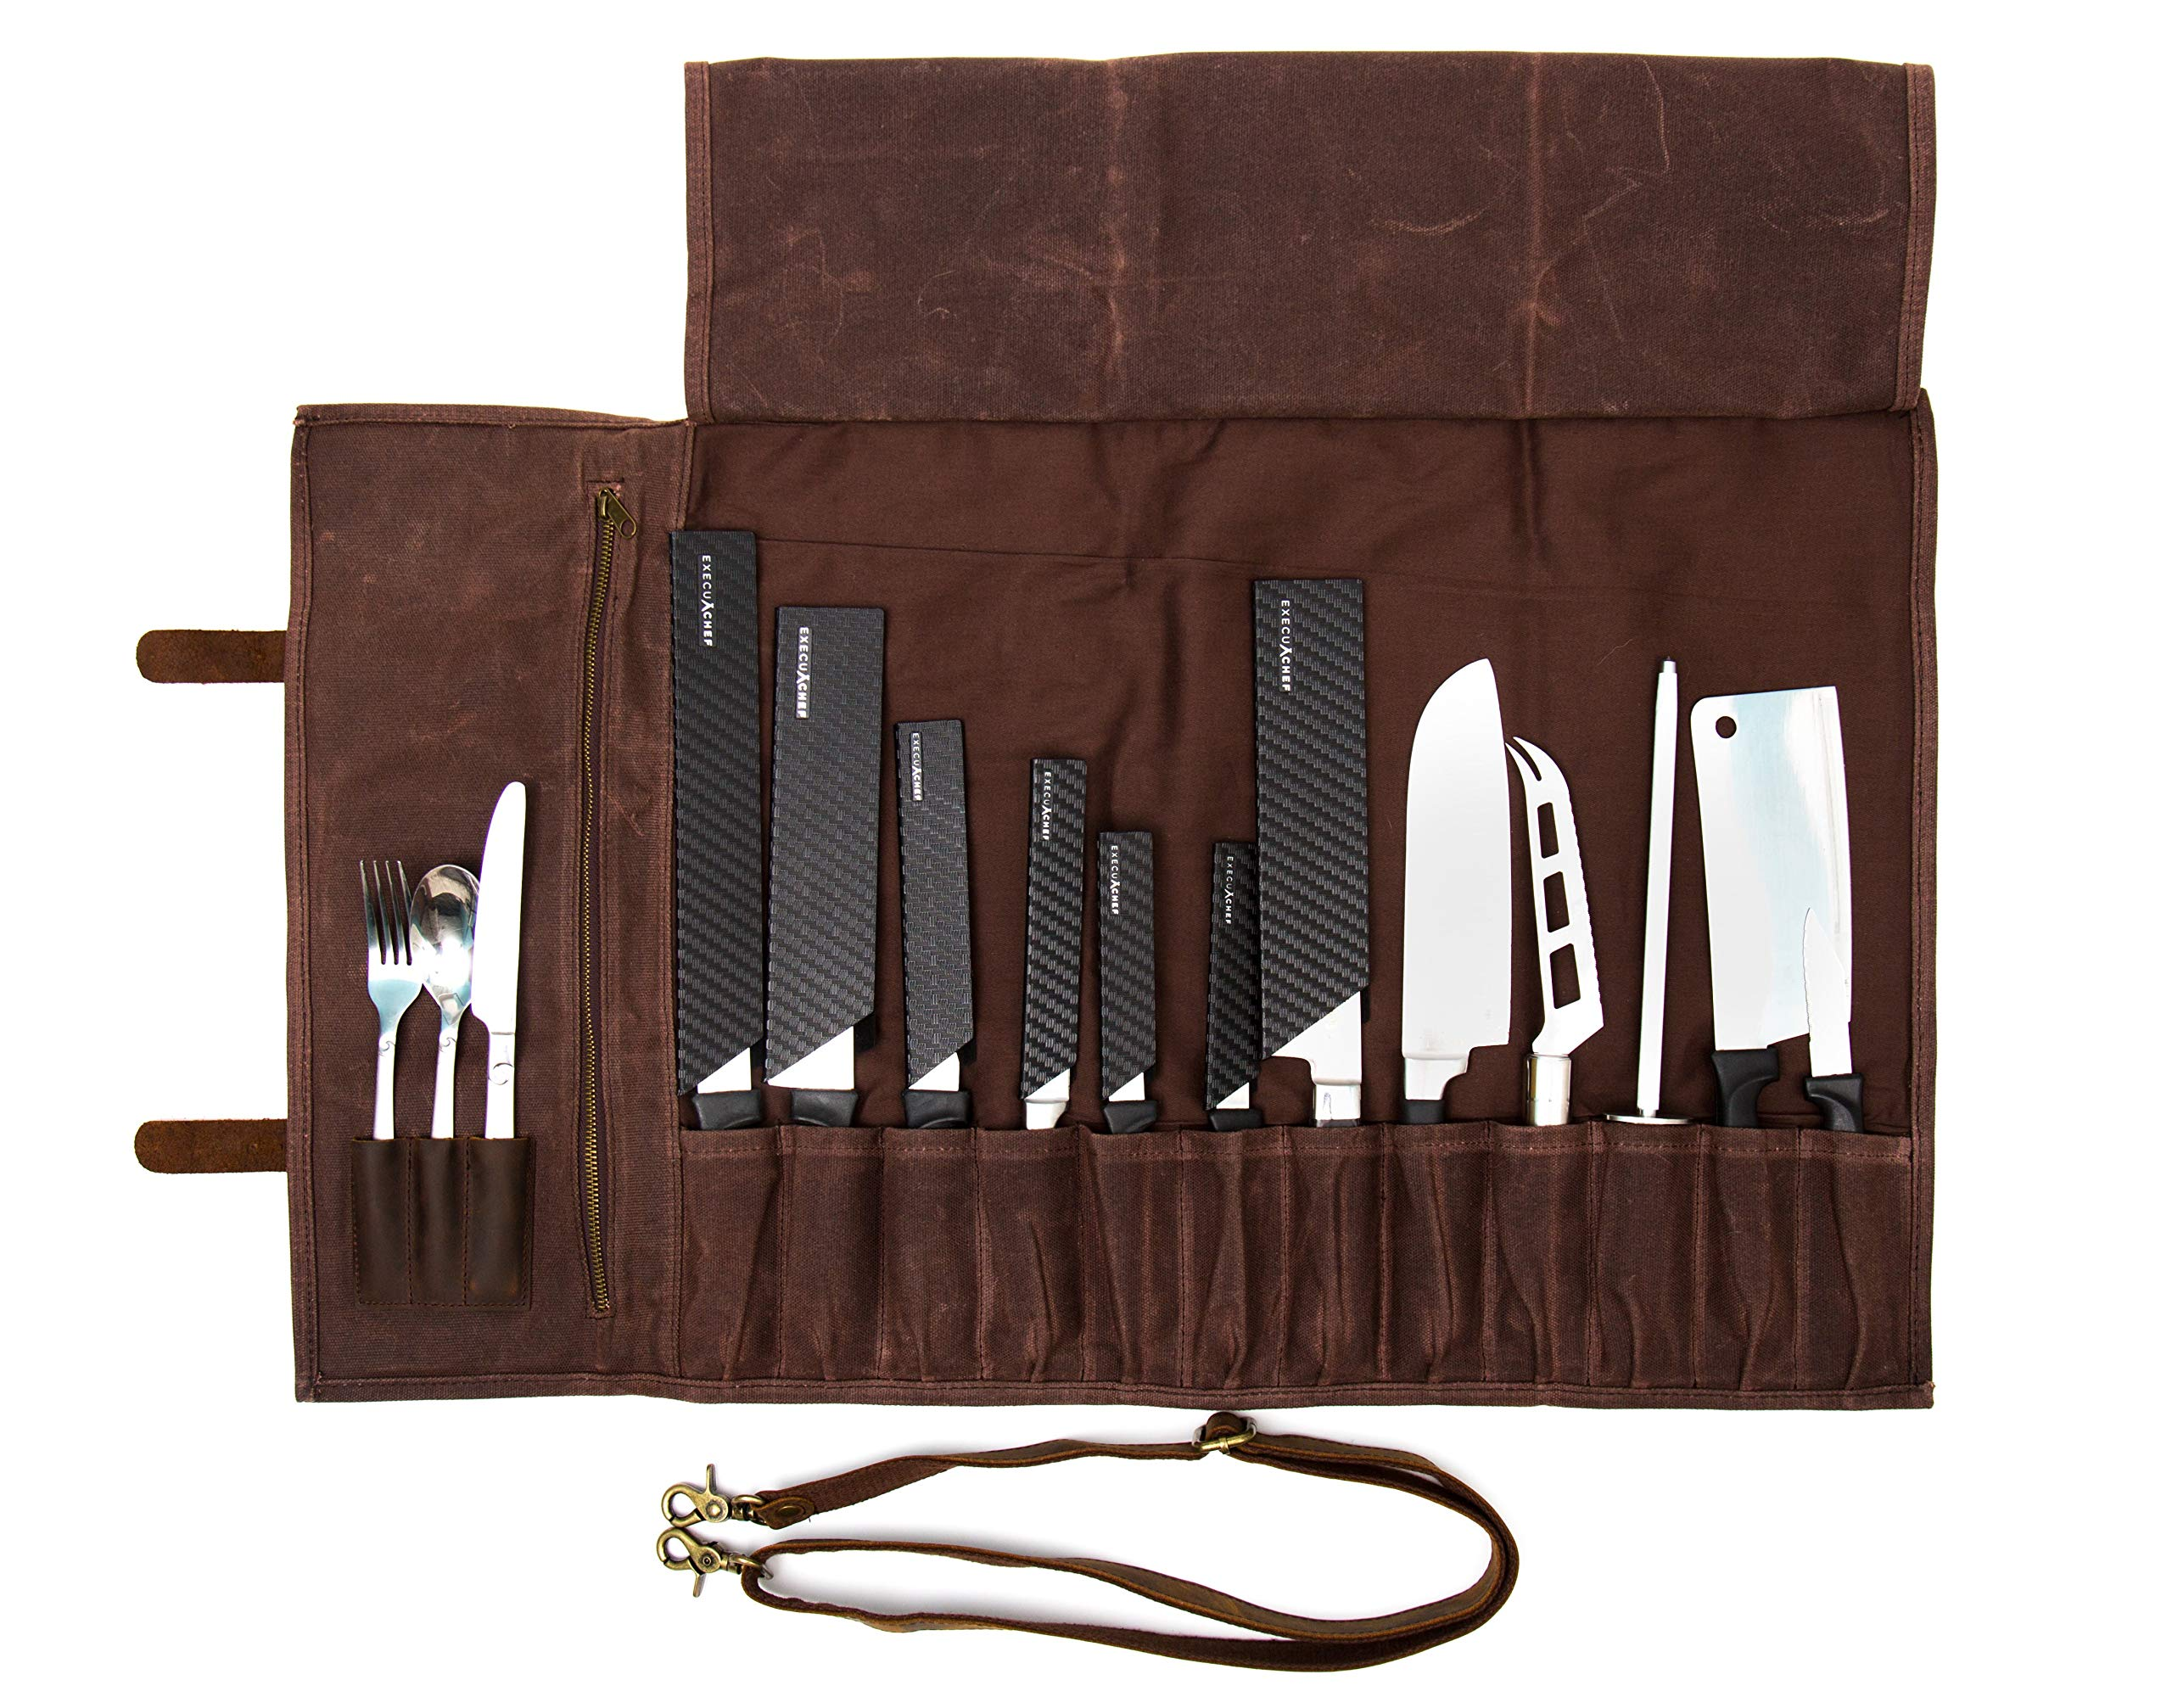 ExecuChef Waxed Canvas Knife Roll | 15 Knife Slots, Card Holder and a Large Zippered Pocket | Genuine Top Grain Leather, Cloth and Brass Buckles | For Professional Chefs and Culinary Students (Brown) by ExecuChef